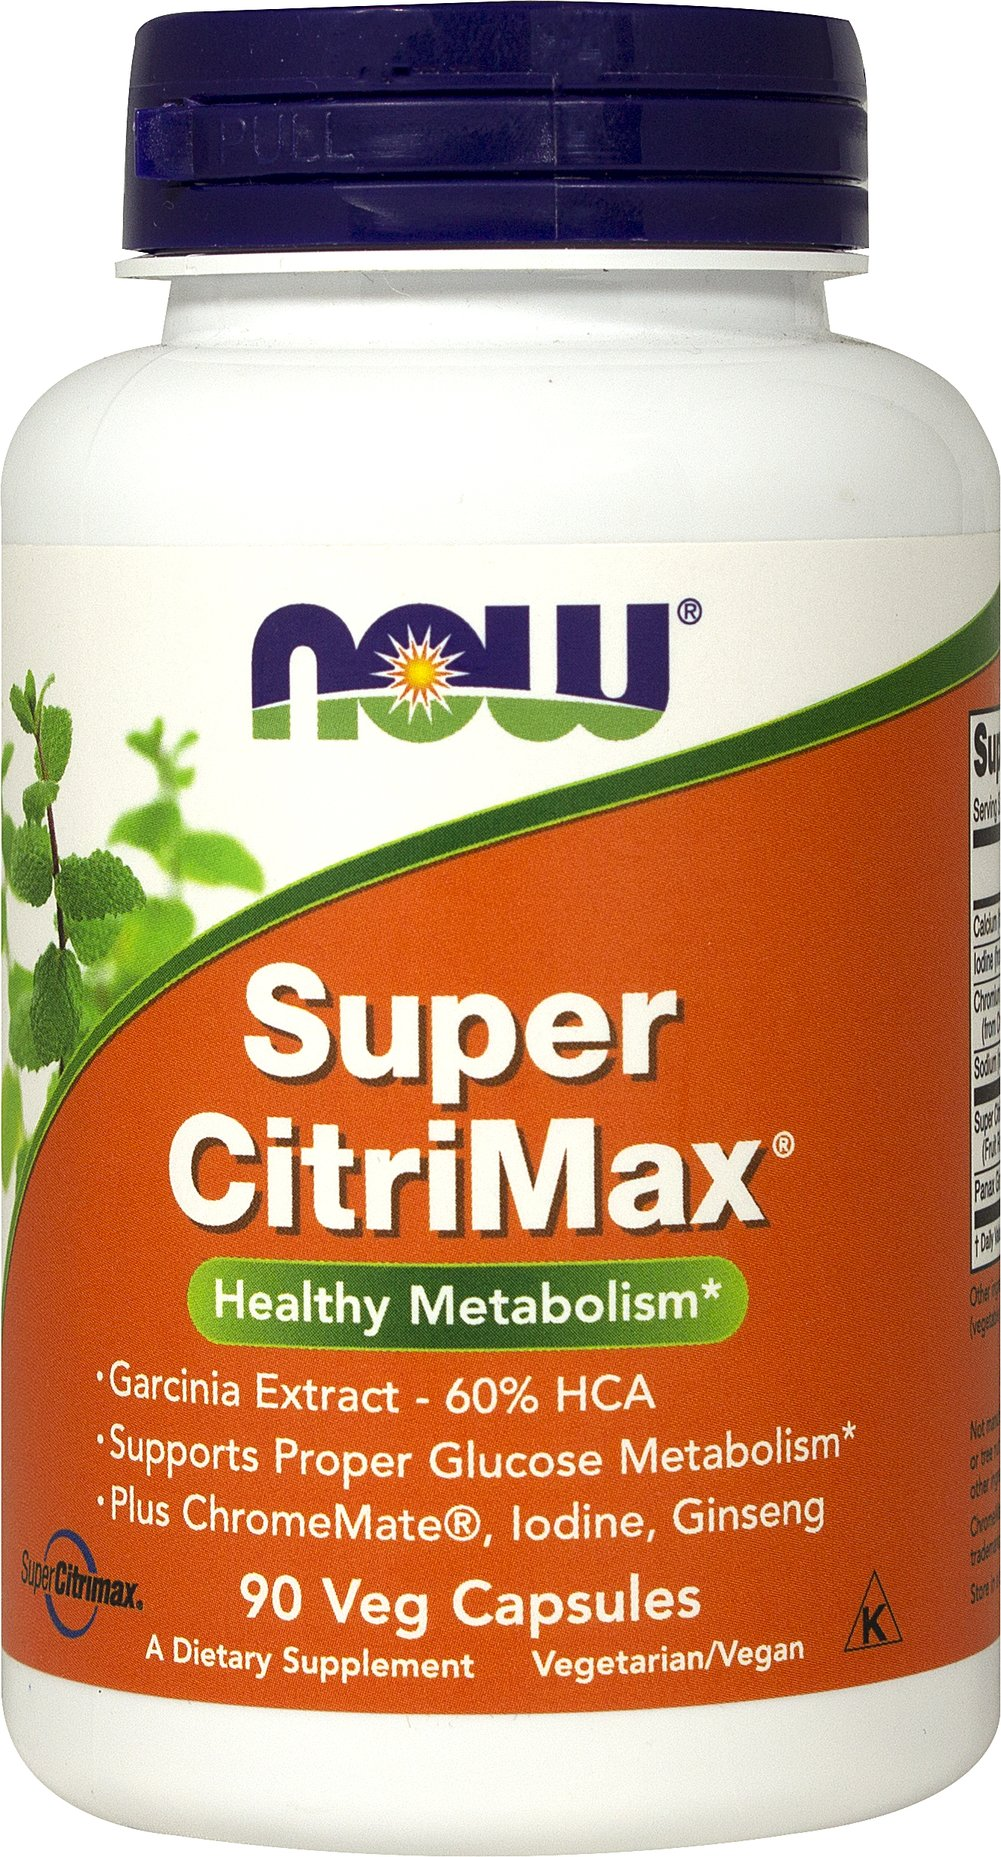 Super Citrimax <p><strong>From the Manufacturer's Label:</strong></p><p>Super Citrimax is manufactured by NOW Foods®.</p> 90 Capsules 1.5 gram $14.99